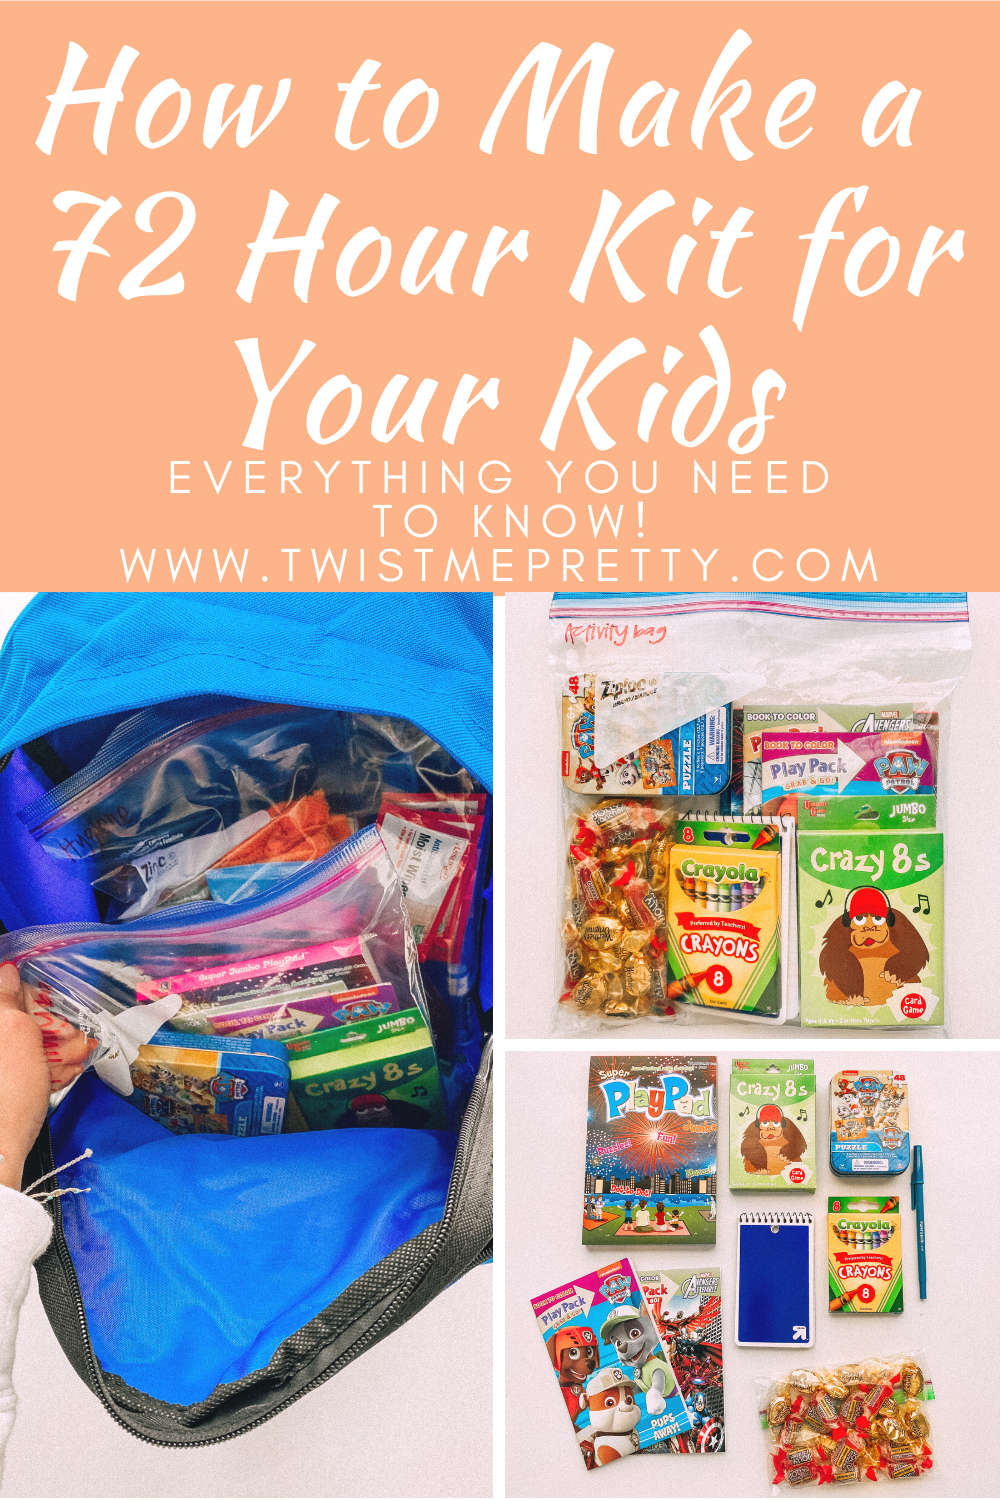 How to Make a 72 Hour Kit for your Kids www.twistmepretty.com